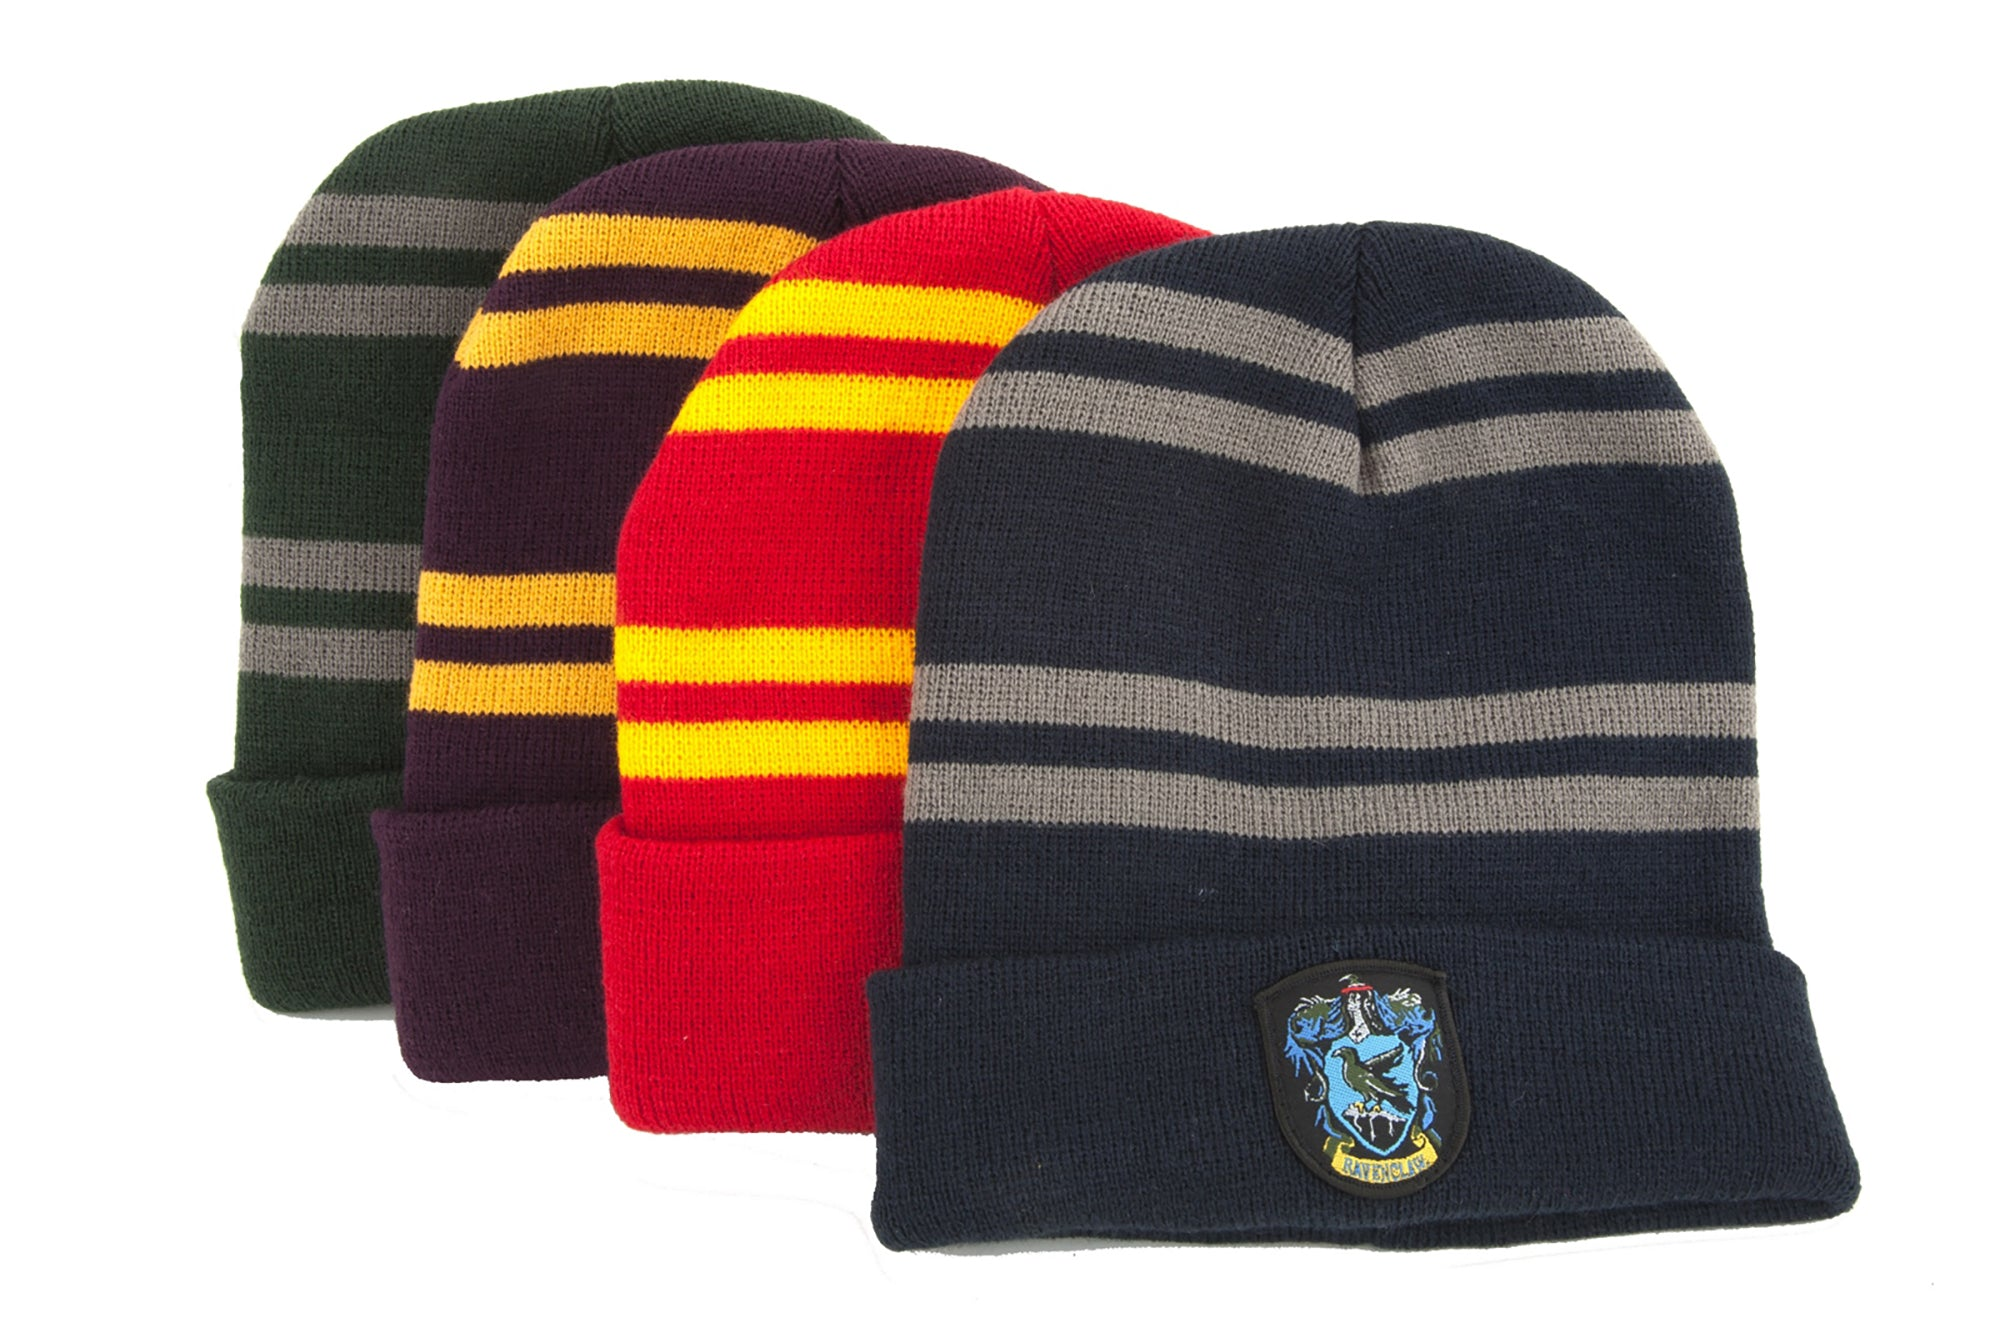 9fb9303cb3585 ... Beanies classic edition harry potter  hufflepuff beanie